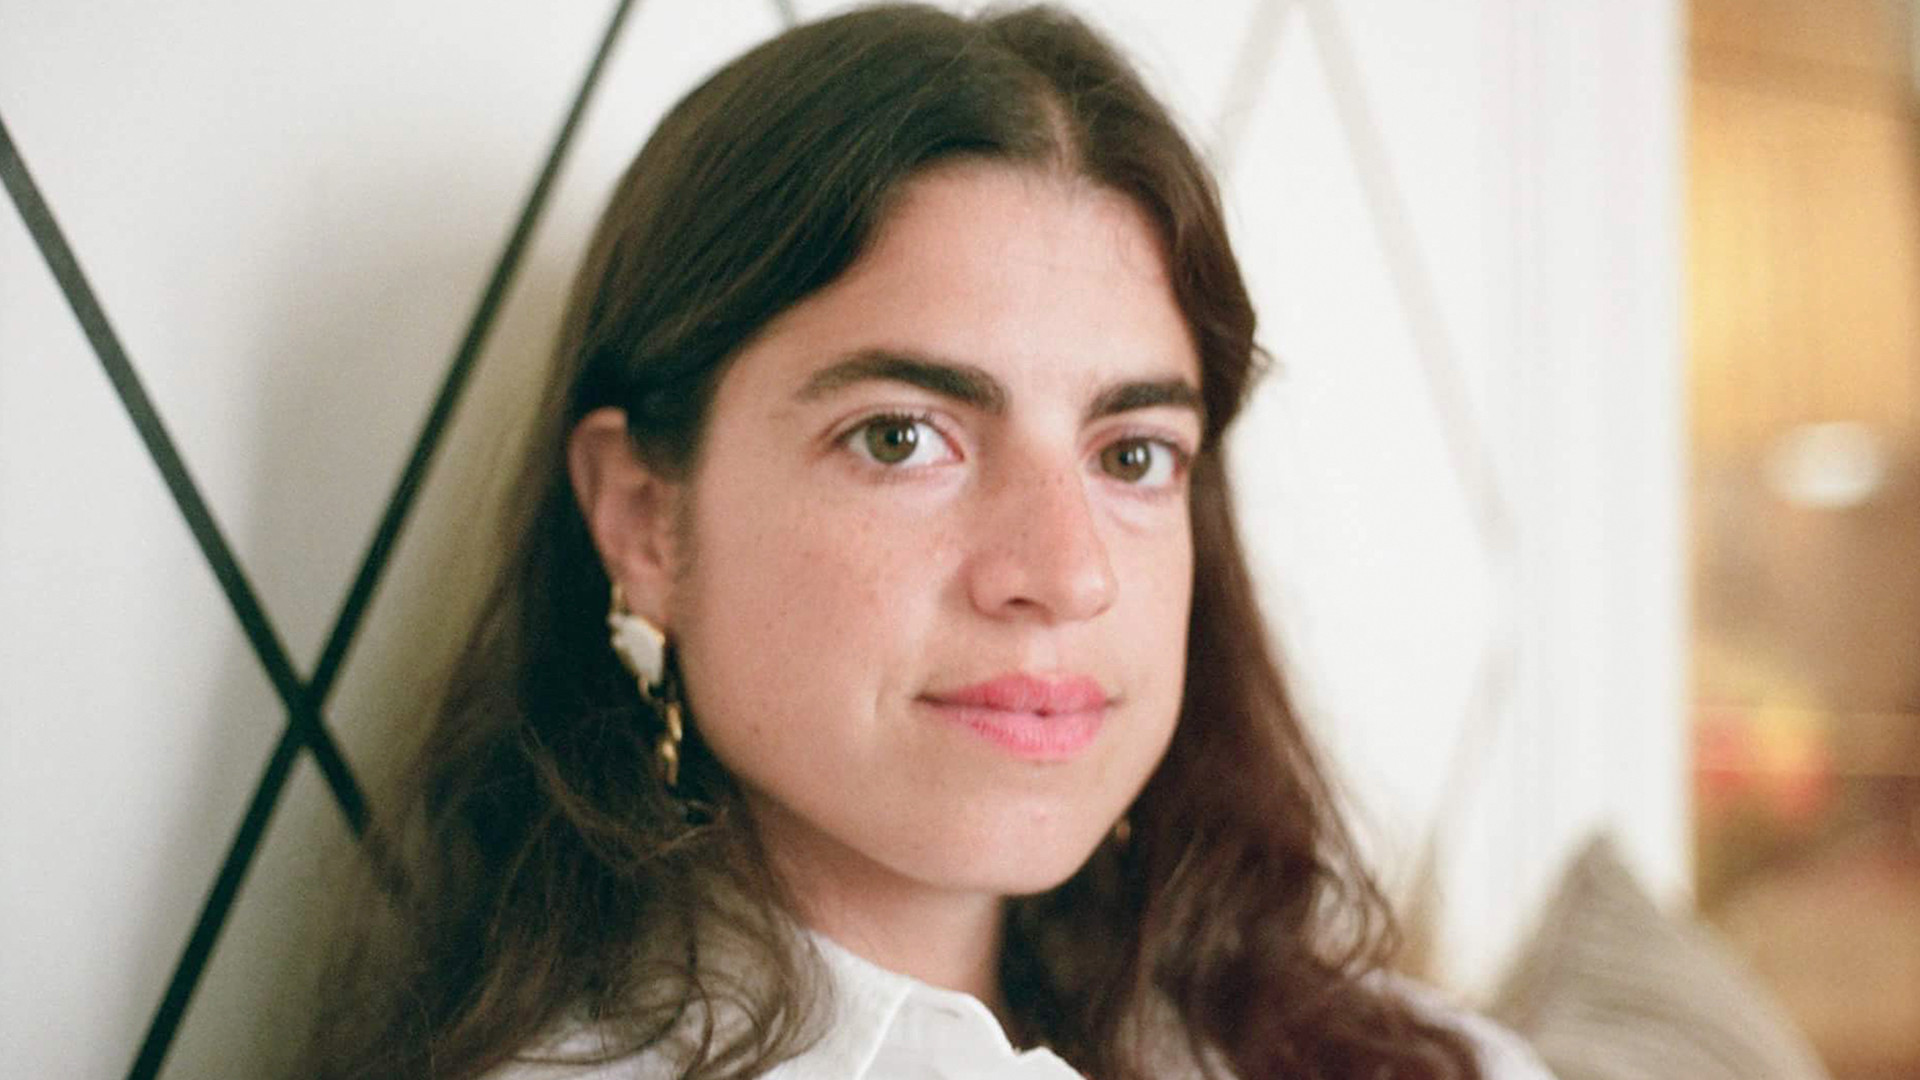 Leandra Medine - Calling all fashion lovers! Descobri uma série no YouTube sobre moda, a M2M